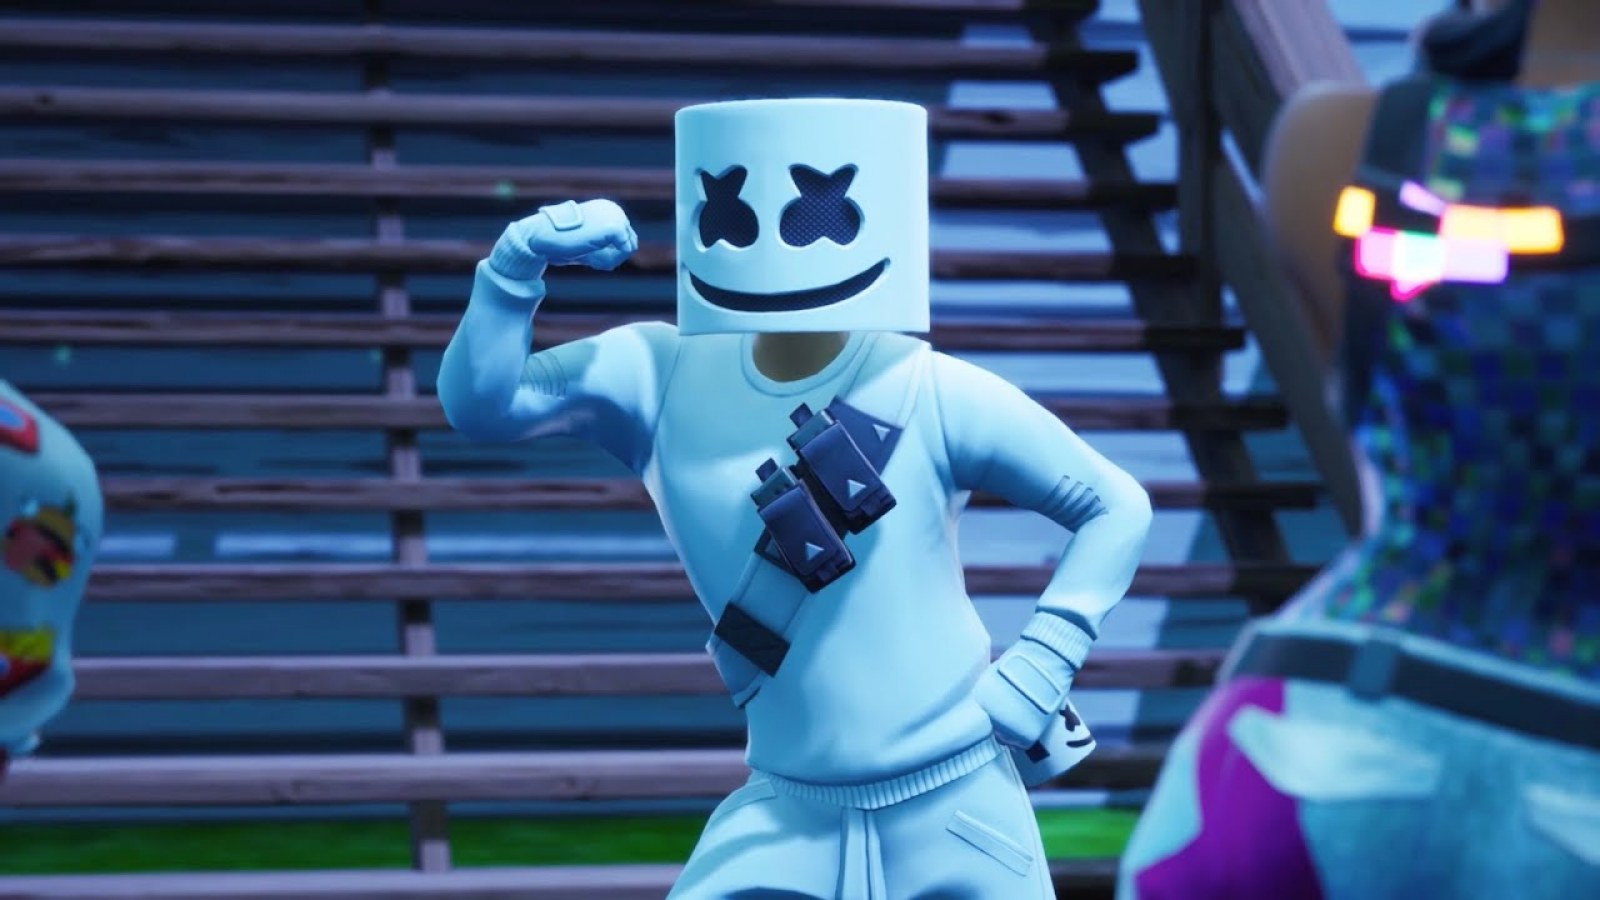 Fortnite 12 0 Update Adds Muting Copyrighted Audio More Concert Events Coming Complete and updated list of cool fortnite wallpapers in hd to download for your phone or computer. fortnite 12 0 update adds muting